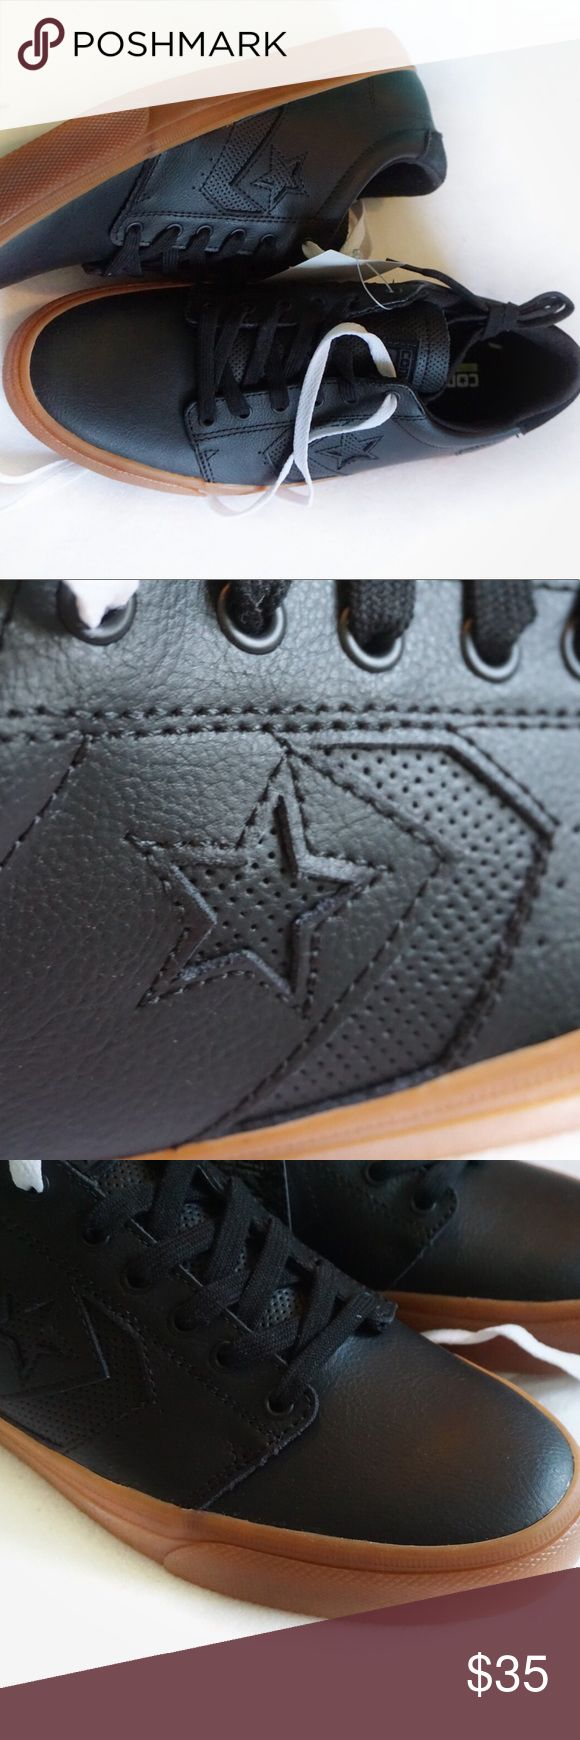 🆕LISTING CONVERSE KA3 OX SIZE 11MEN, 12.5WMN -BRAND NEW IN BOX NO LID -SIZE: 11MEN, 12.5WMN -COLOR: BLACK/GUM -MADE IN CHINA           ⚠️⚠️⚠️PLEASE UNDERSTAND SOMETIME THE BOX POSSIBLY DAMAGED. IF YOU CONCERNED ABOUT THE BOX PLEASE ASK FIRST BEFORE PURCHASE. PLEASE PAY ATTENTION TO DETAILED OF SHOES OF THE PIC. THANKS ⚠️⚠️⚠️⚠️⚠️       ⭐️TOP RATED SELLER 👍FAST SHIPPER NEXT DAY SHIPPING ❌NO TRADE ❌NO PAYPAL ✅BUNDLE OFFER Converse Shoes Sneakers